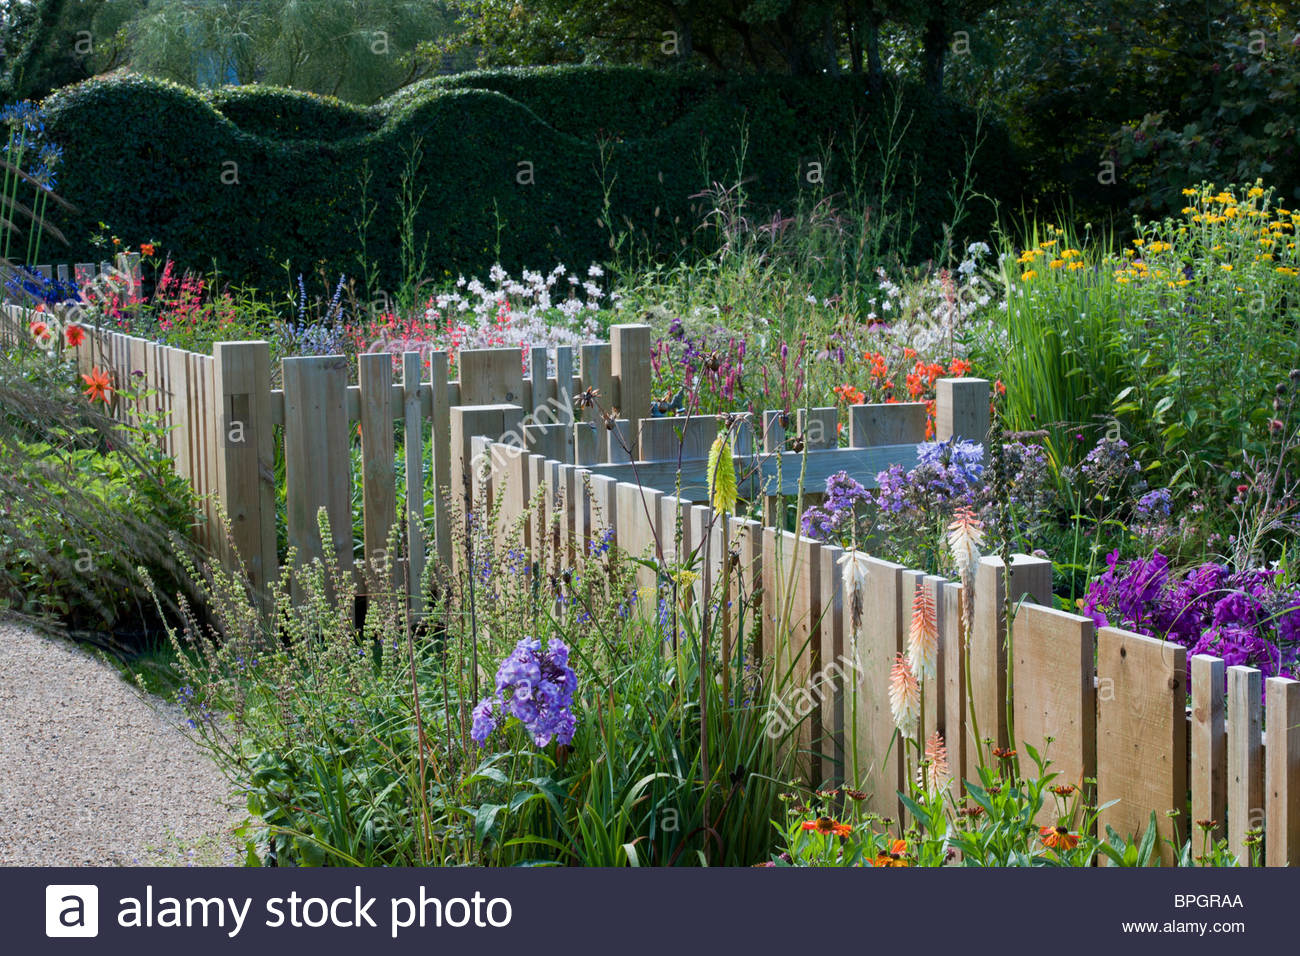 Small Garden Fencing: Small Garden Wooden Fence Fencing Unusual Varied Widths